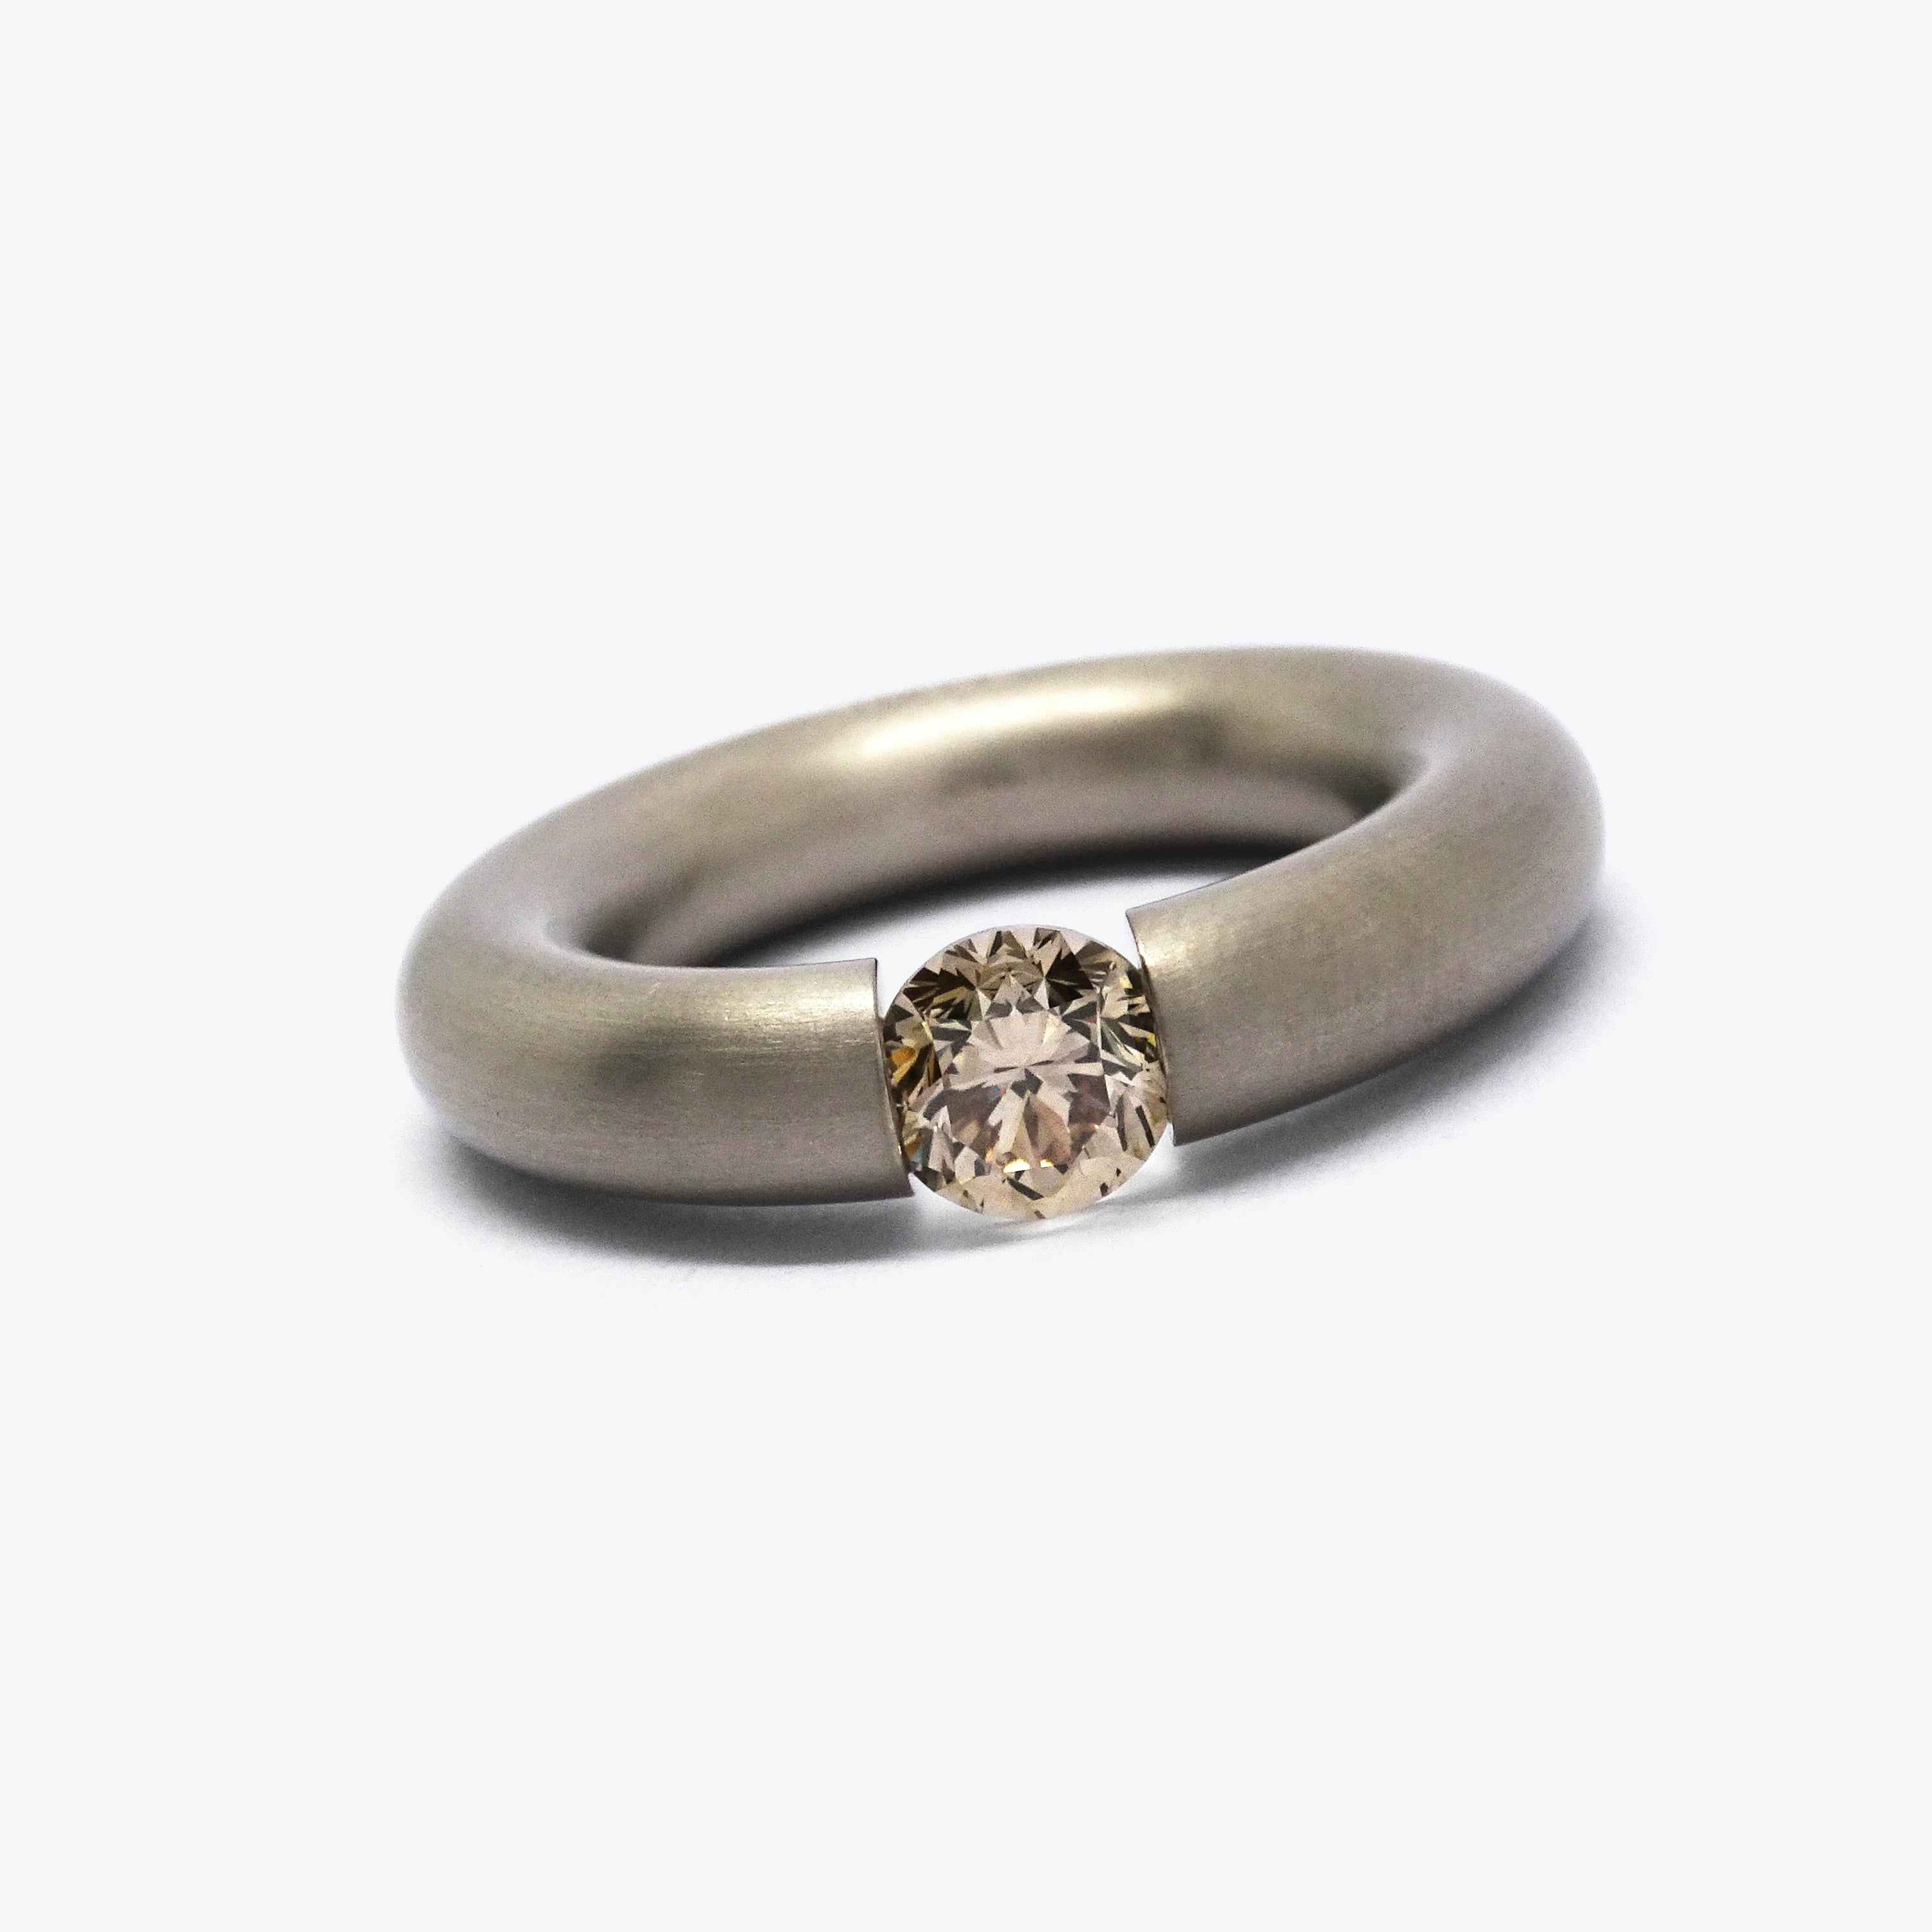 ROUND TENSION RING - SANDGREY